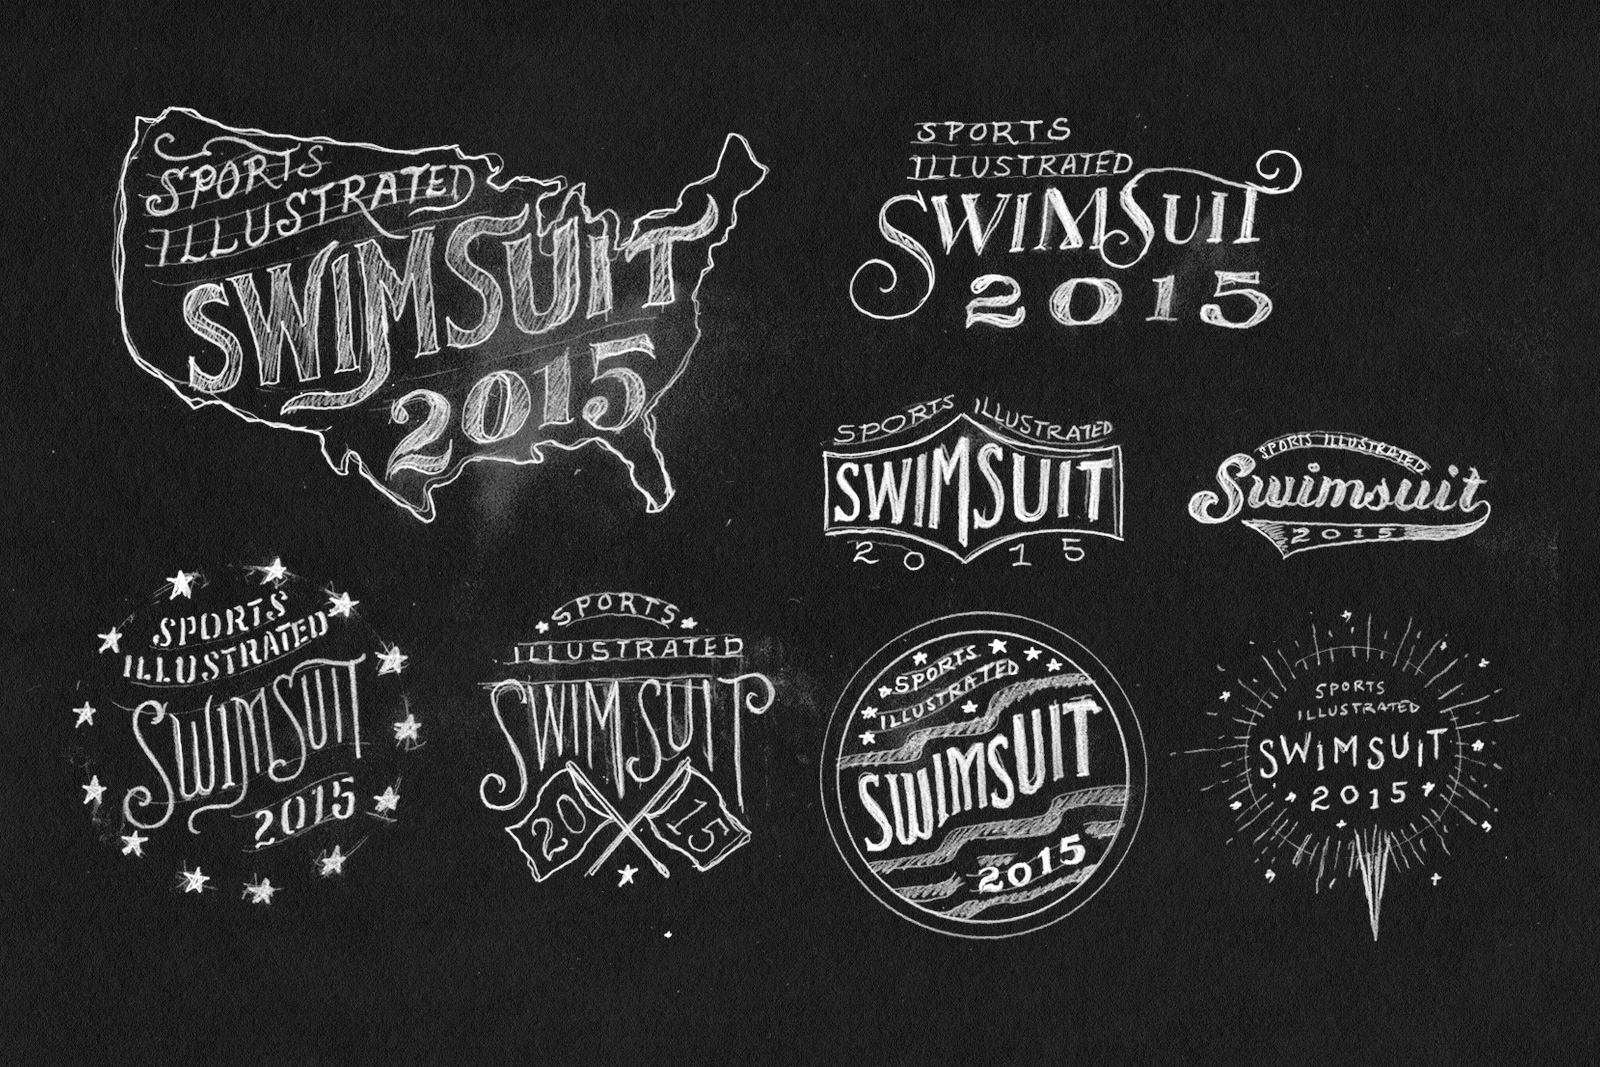 sports illustrated 2015 swimsuit edition logos by jon contino